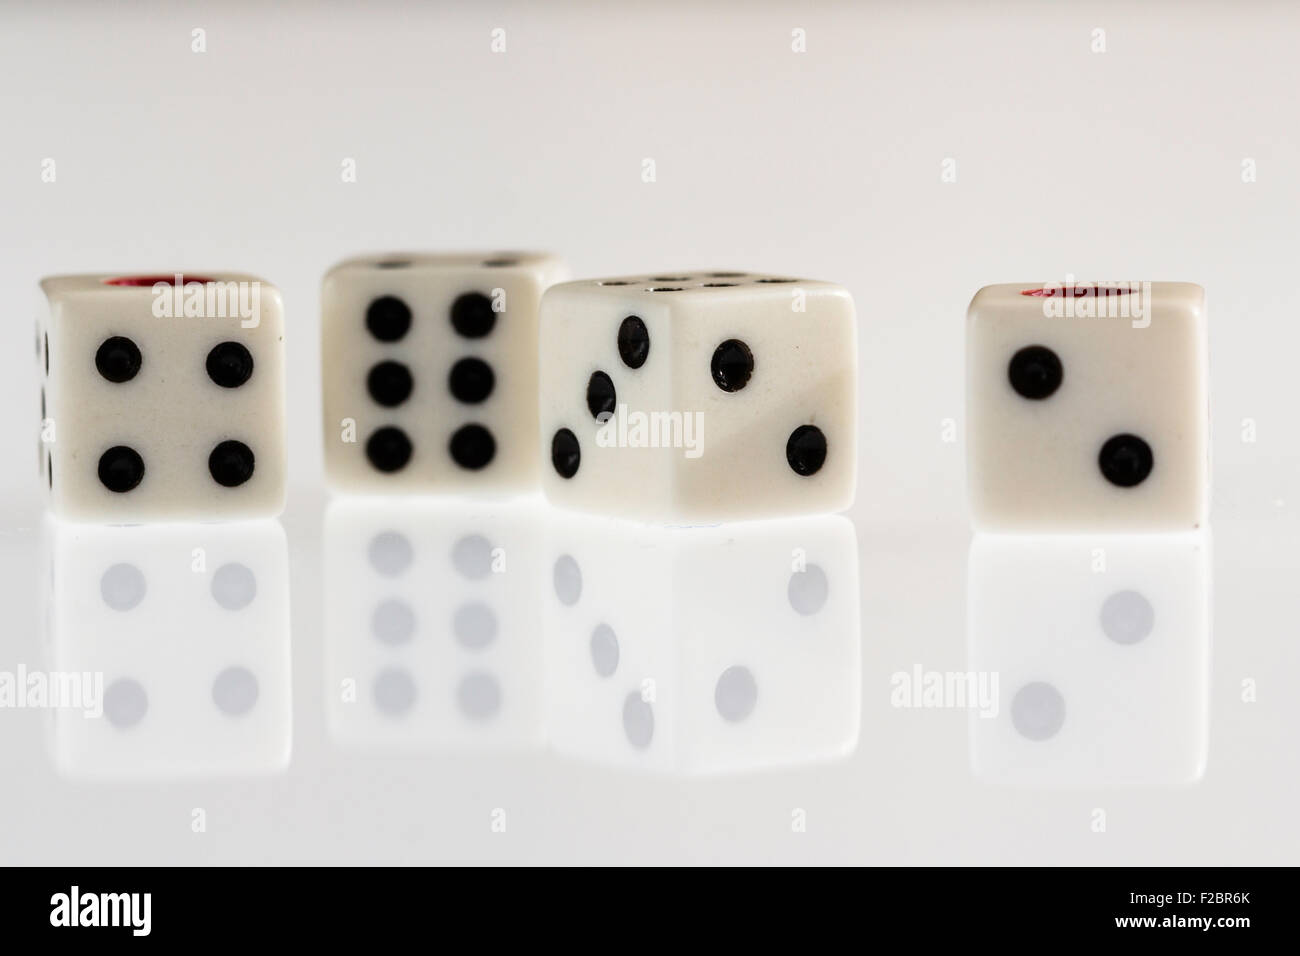 Four dice on plain background with reflective surface - Stock Image